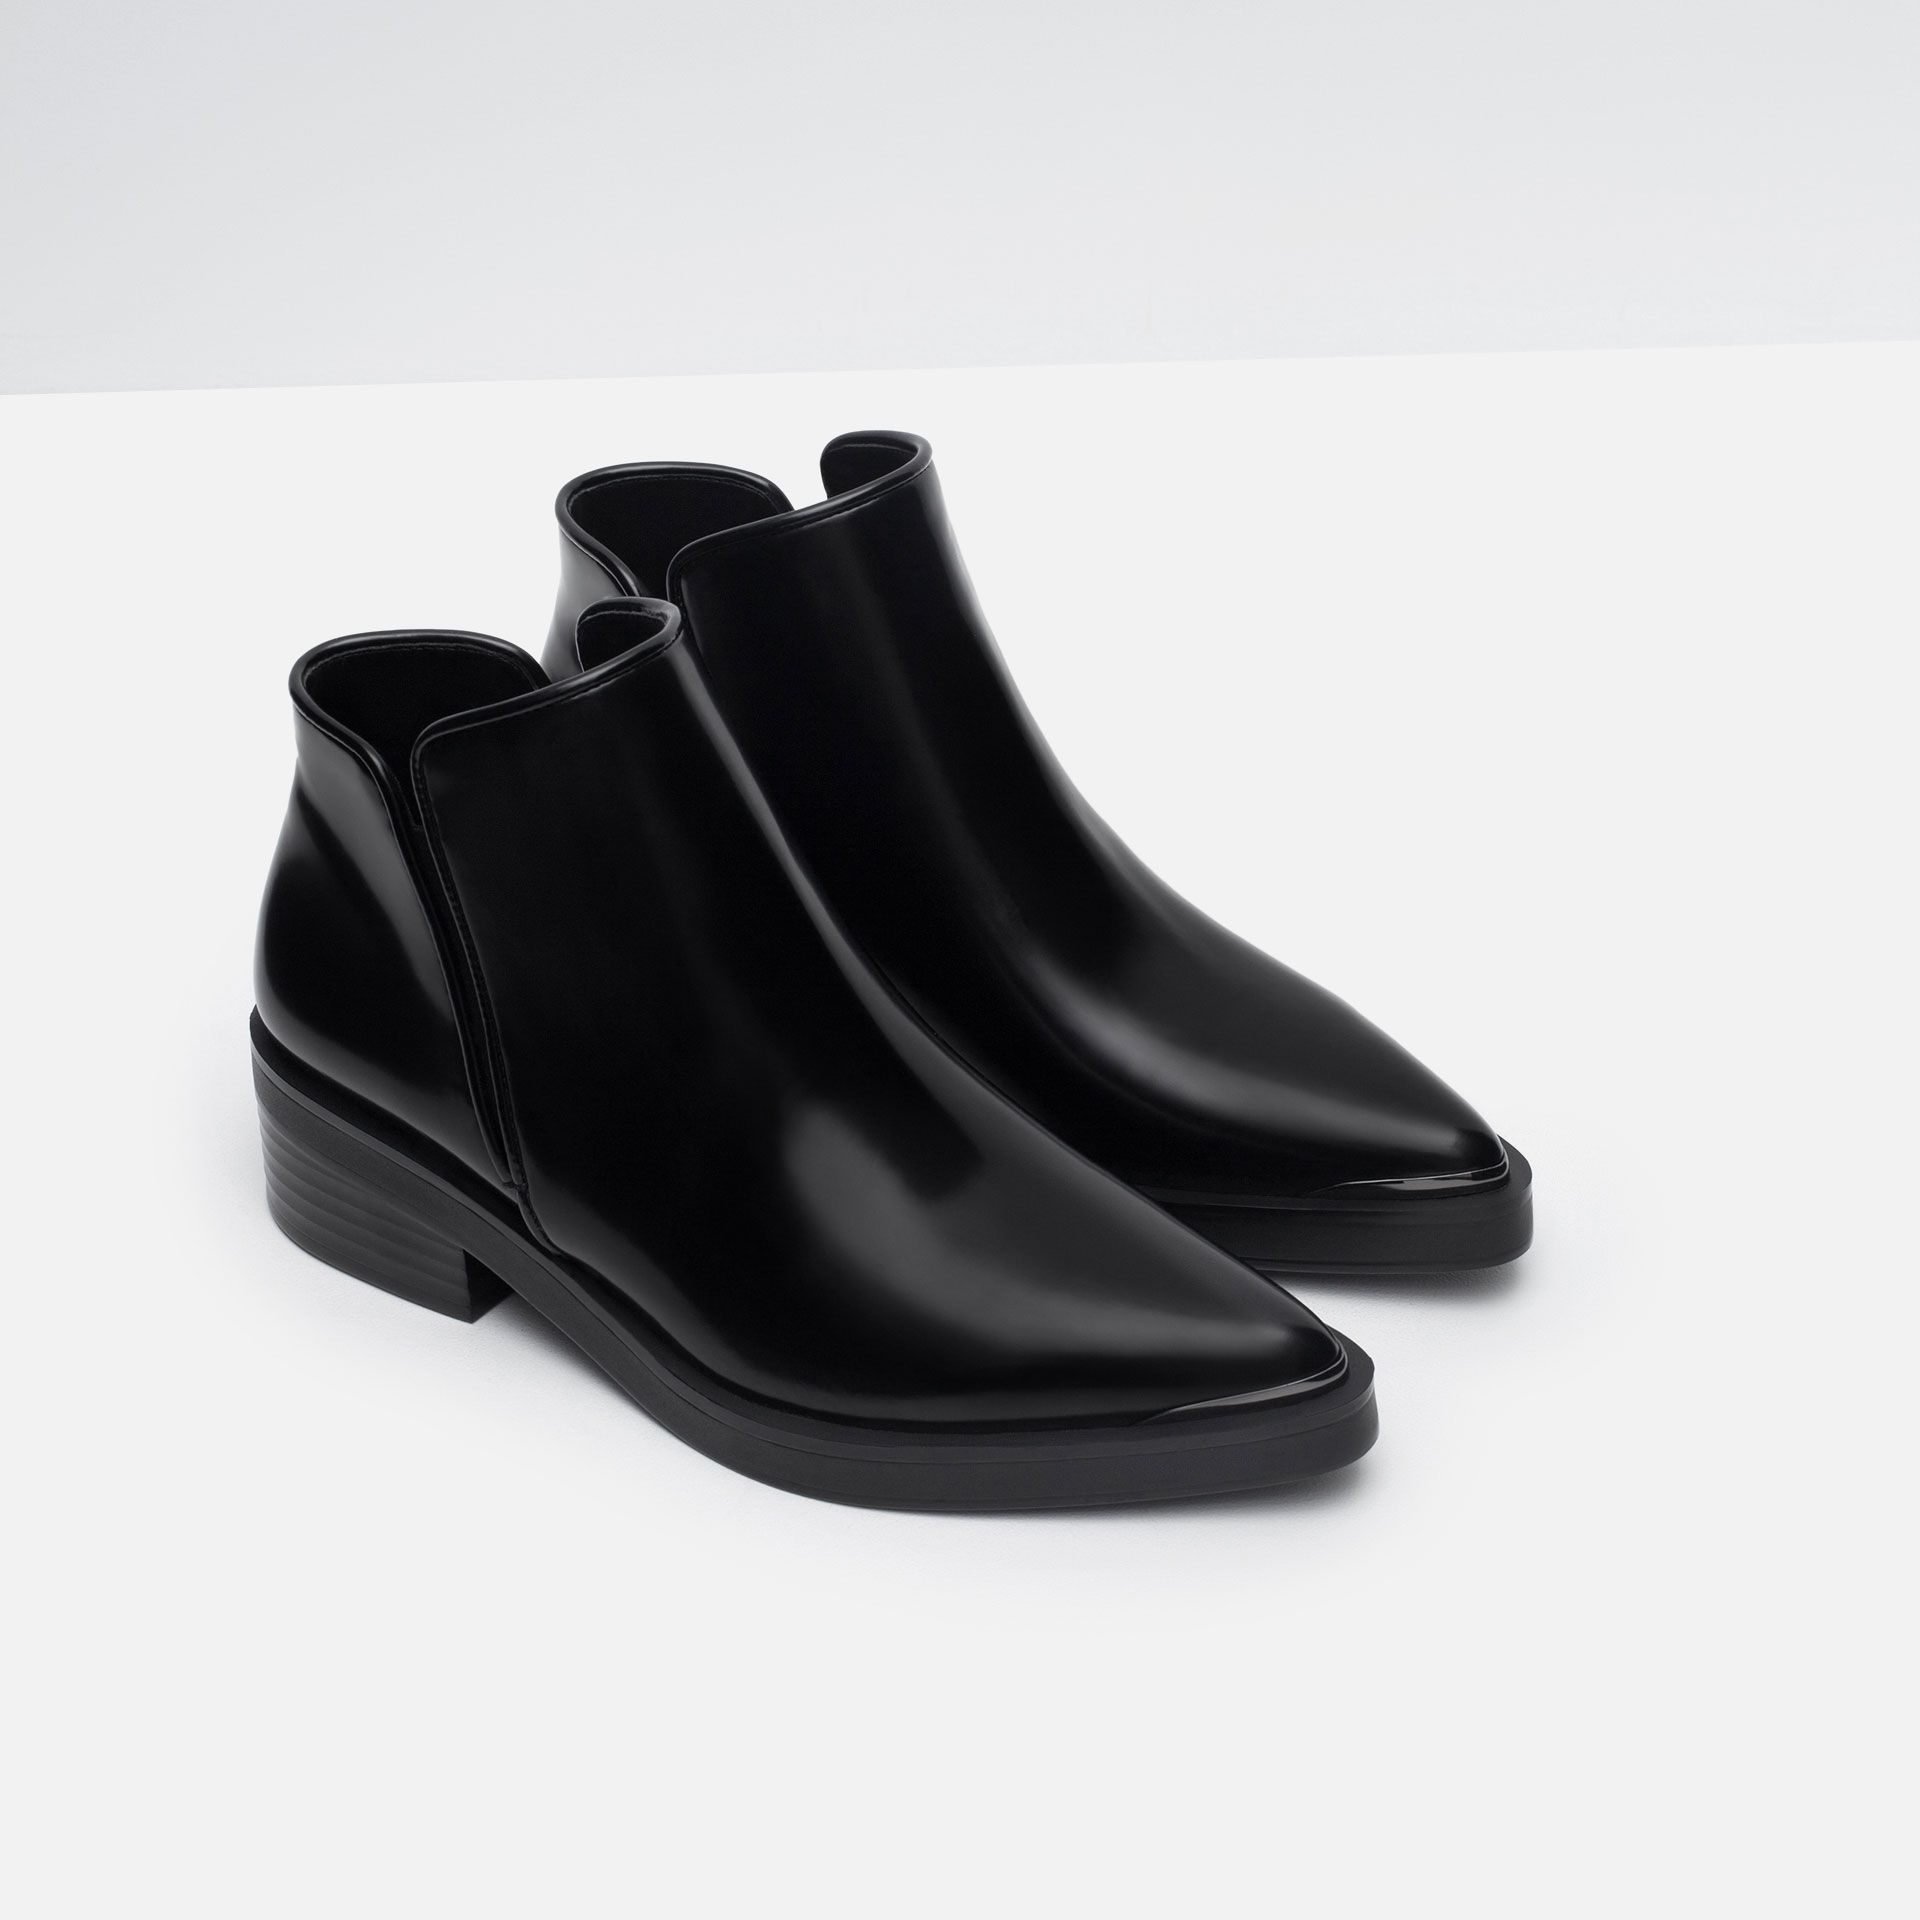 597f67bfd72 FLAT POINTED ANKLE BOOTS from Zara | Shoes in 2019 | Pointed ankle ...